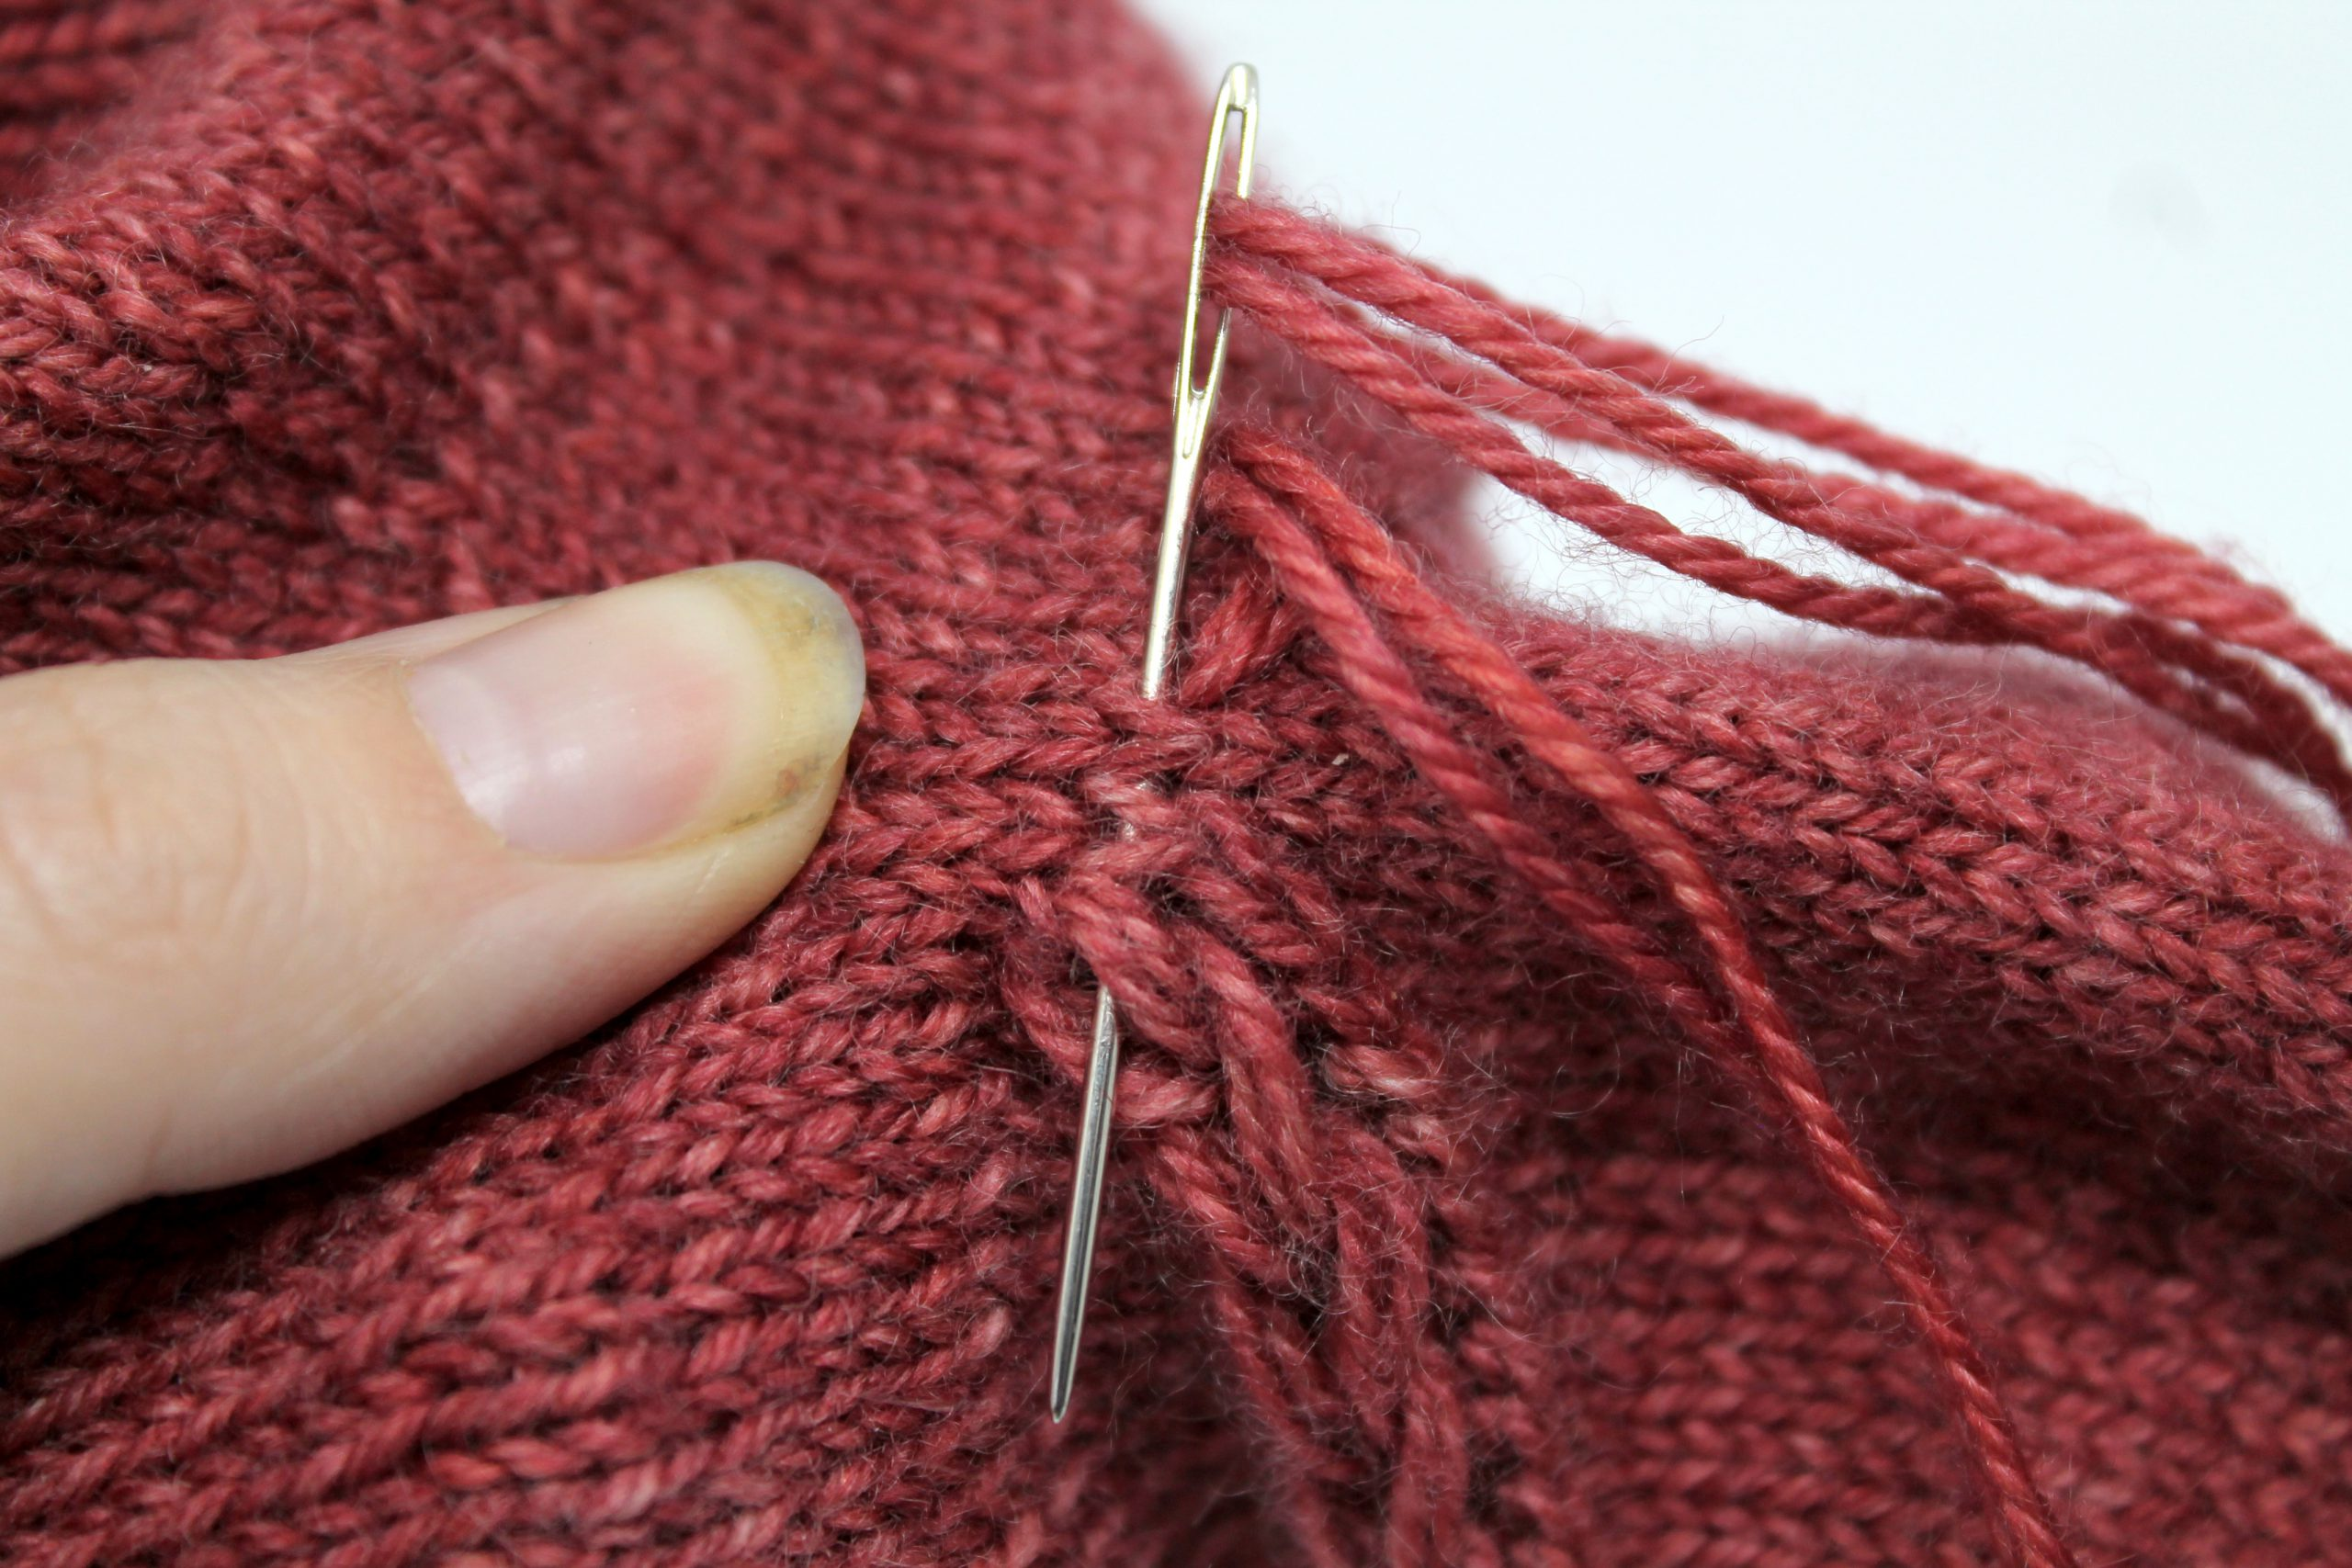 The tapestry need entering the mitt through the fabric and exiting through the last stitch of the drop stitch braid